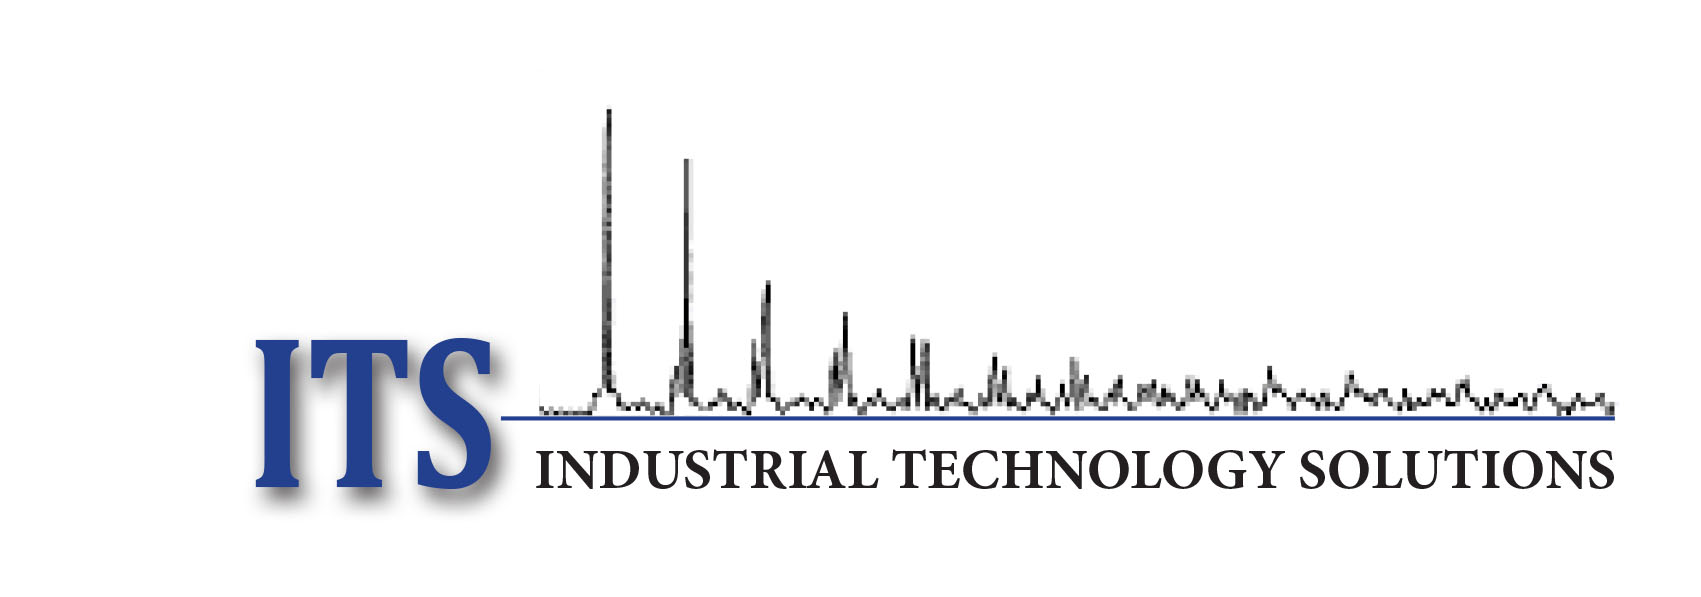 Industrial Technology Solutions (ITS) logotype